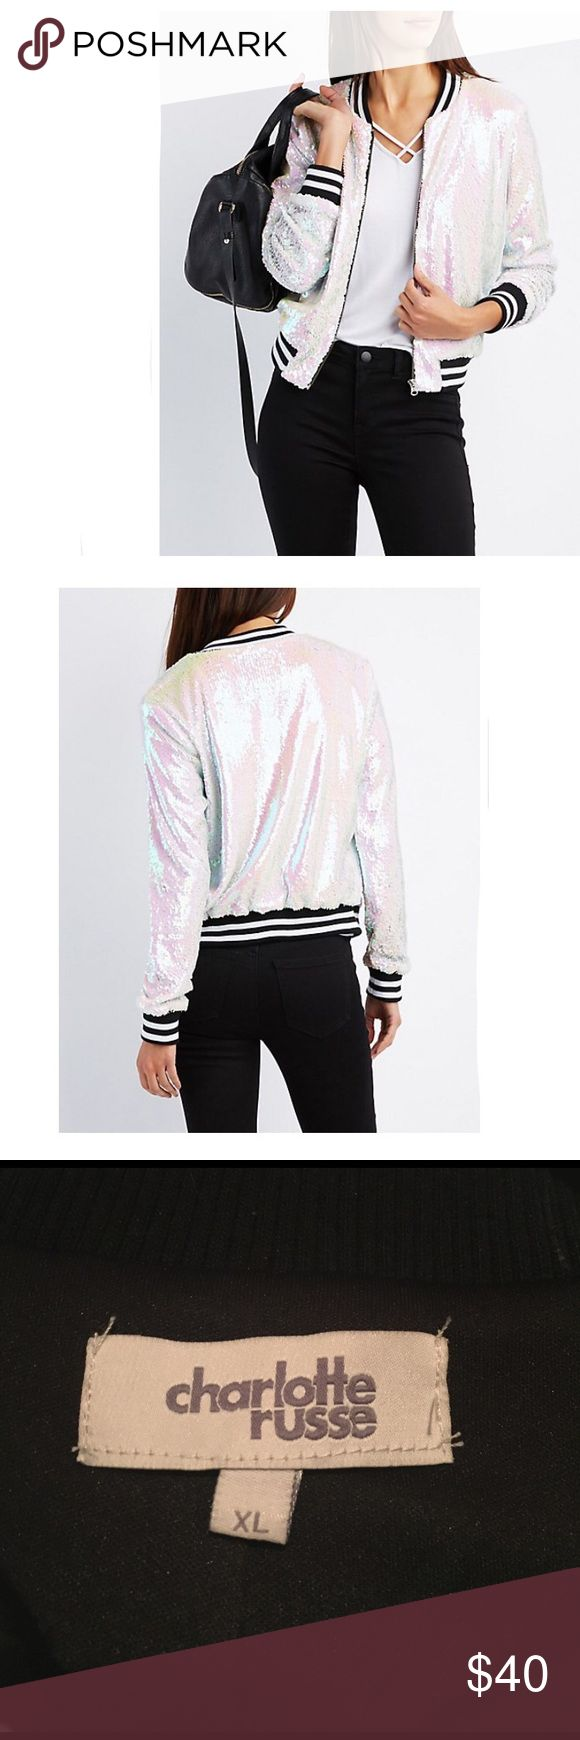 "NWT Charlotte Russe White Sequin Bomber Jacket XL Online only! Bring a little sparkle to your bomber game with this fabulous sequin jacket! Striped ribbed knit trims the collar, cuffs, and hem for a sporty touch, while a metal zipper seals the deal in front.                                   Size XL Fluorescent Sequin colors  Zipper closure at front Fully lined.             Product Model Size: Model is 5'11"" tall Product Fit: Model is wearing size small. Size small measures 20.5"" from top to…"